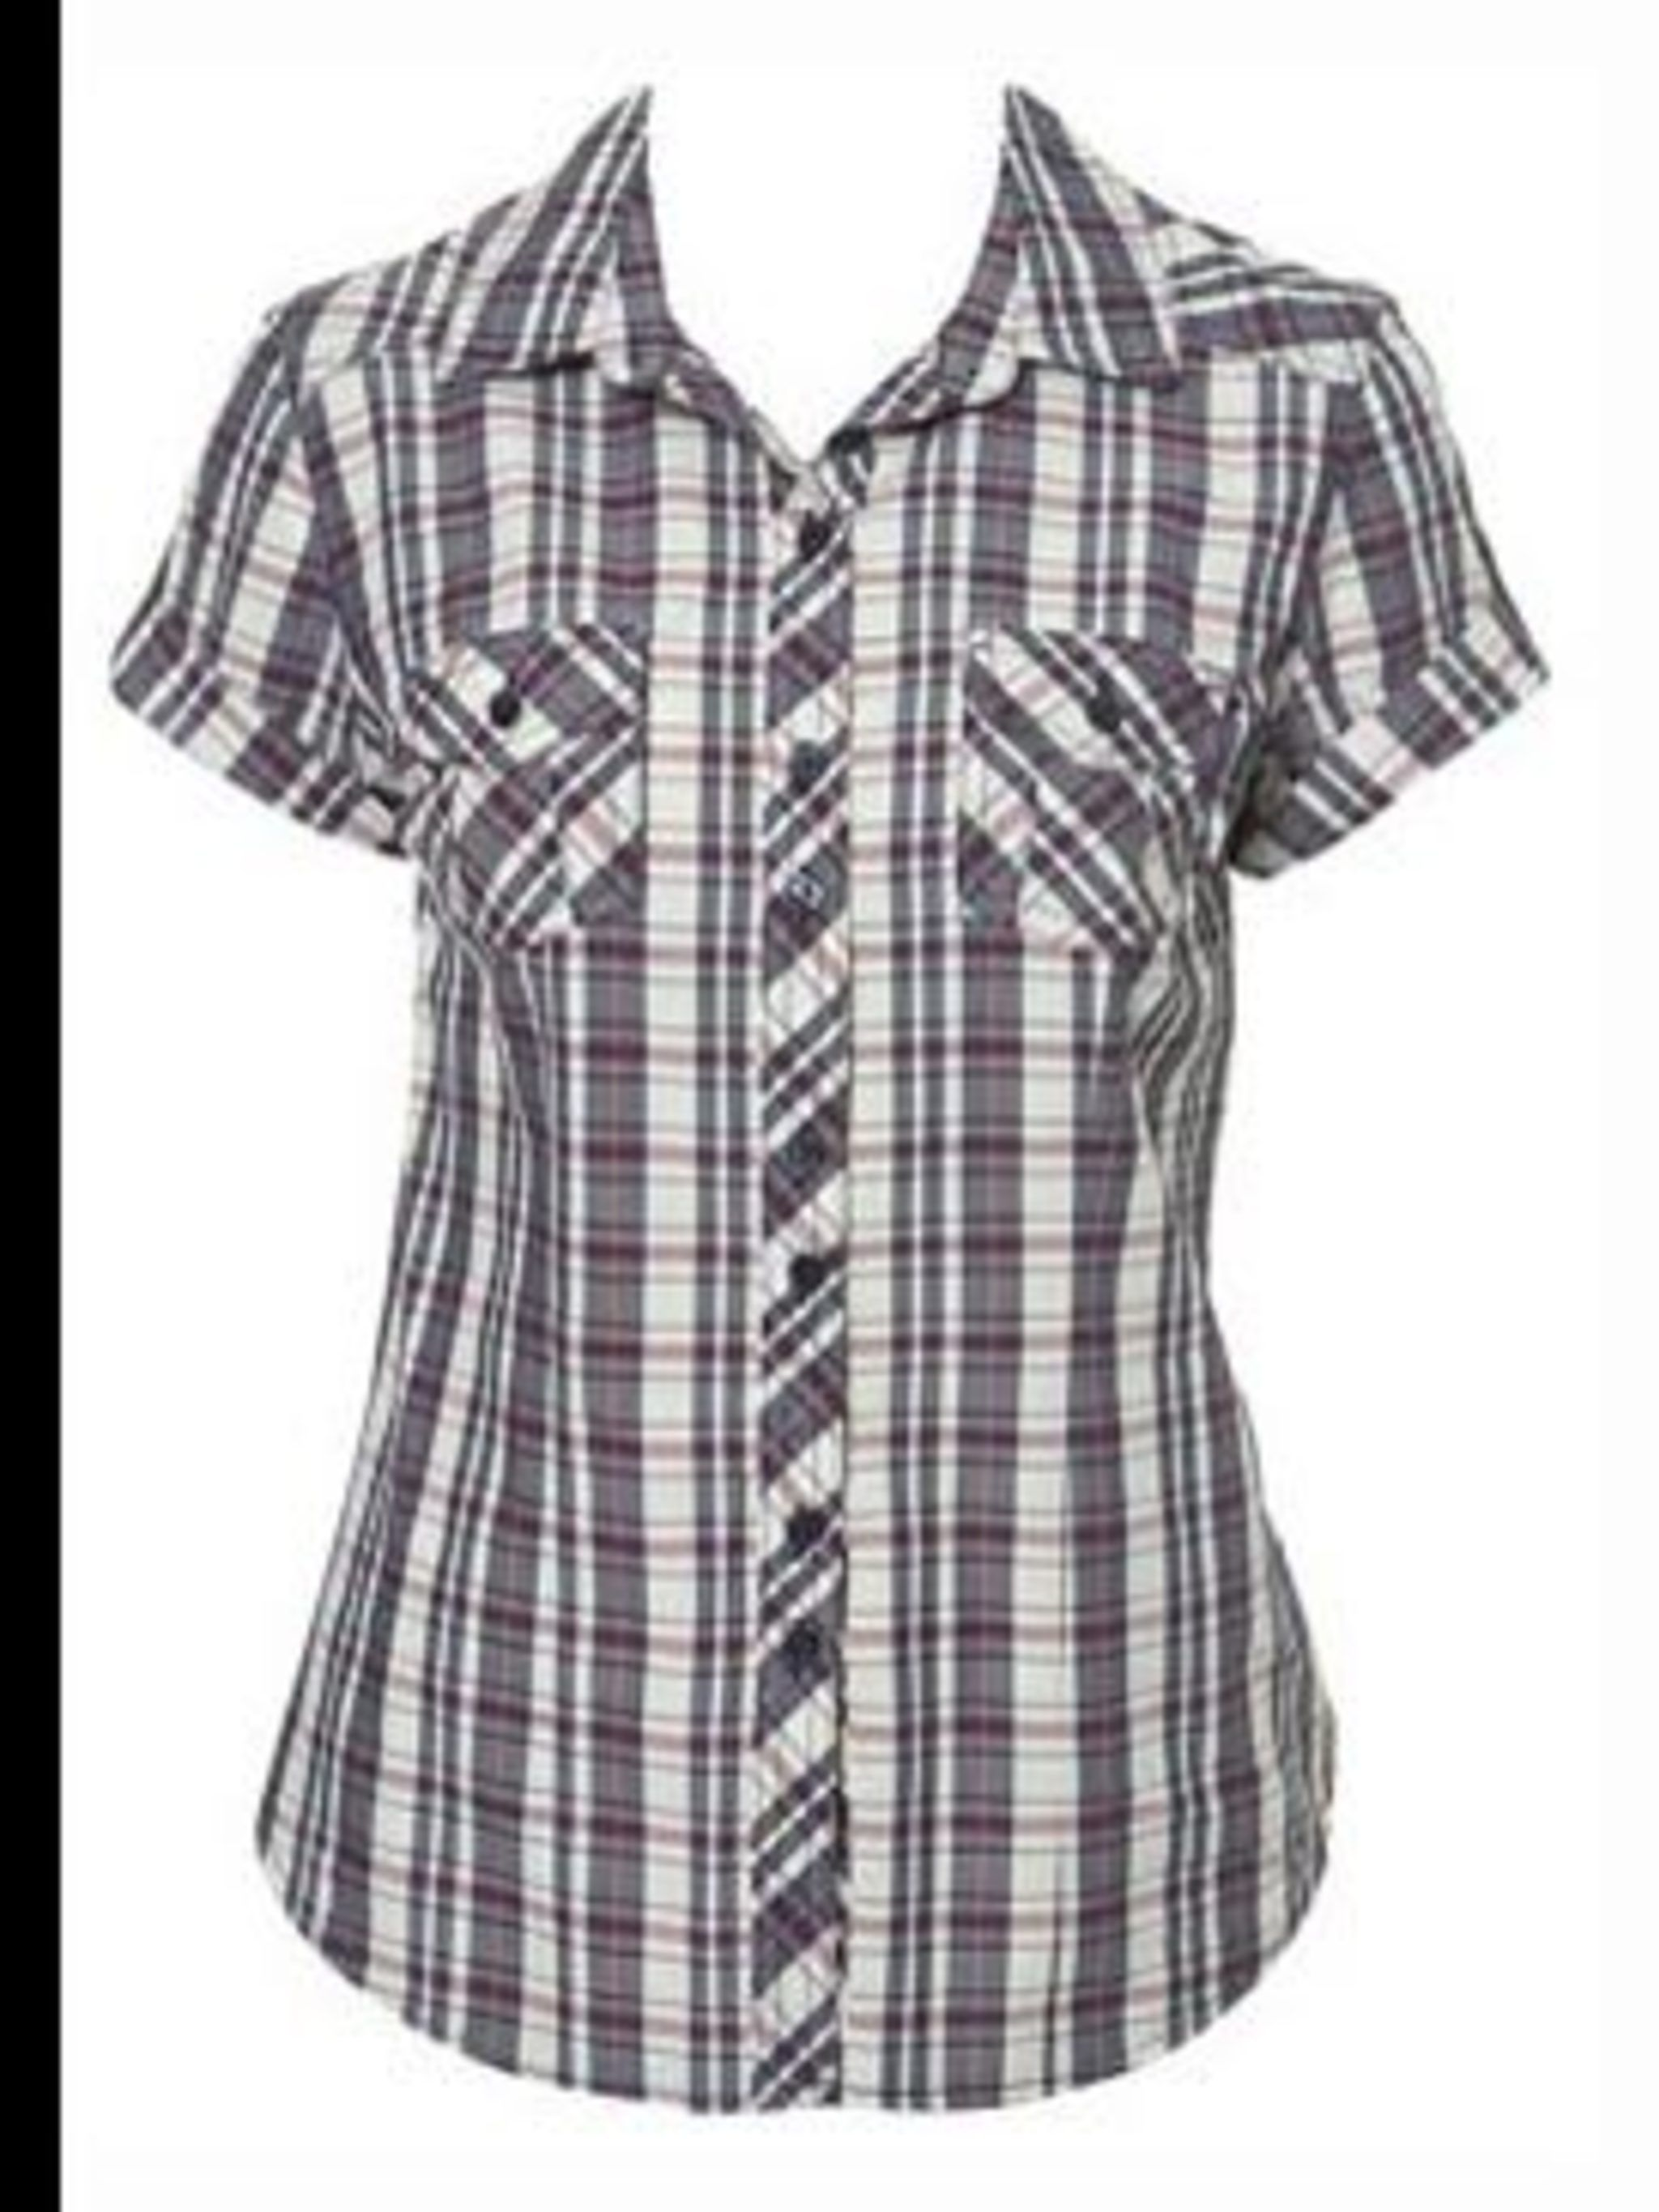 "<p>Short sleeve check shirt, £25, by <a href=""http://www.topshop.com/webapp/wcs/stores/servlet/ProductDisplay?beginIndex=0&viewAllFlag=&catalogId=19551&storeId=12556&categoryId=93615&parent_category_rn=42325&productId=661234&la"